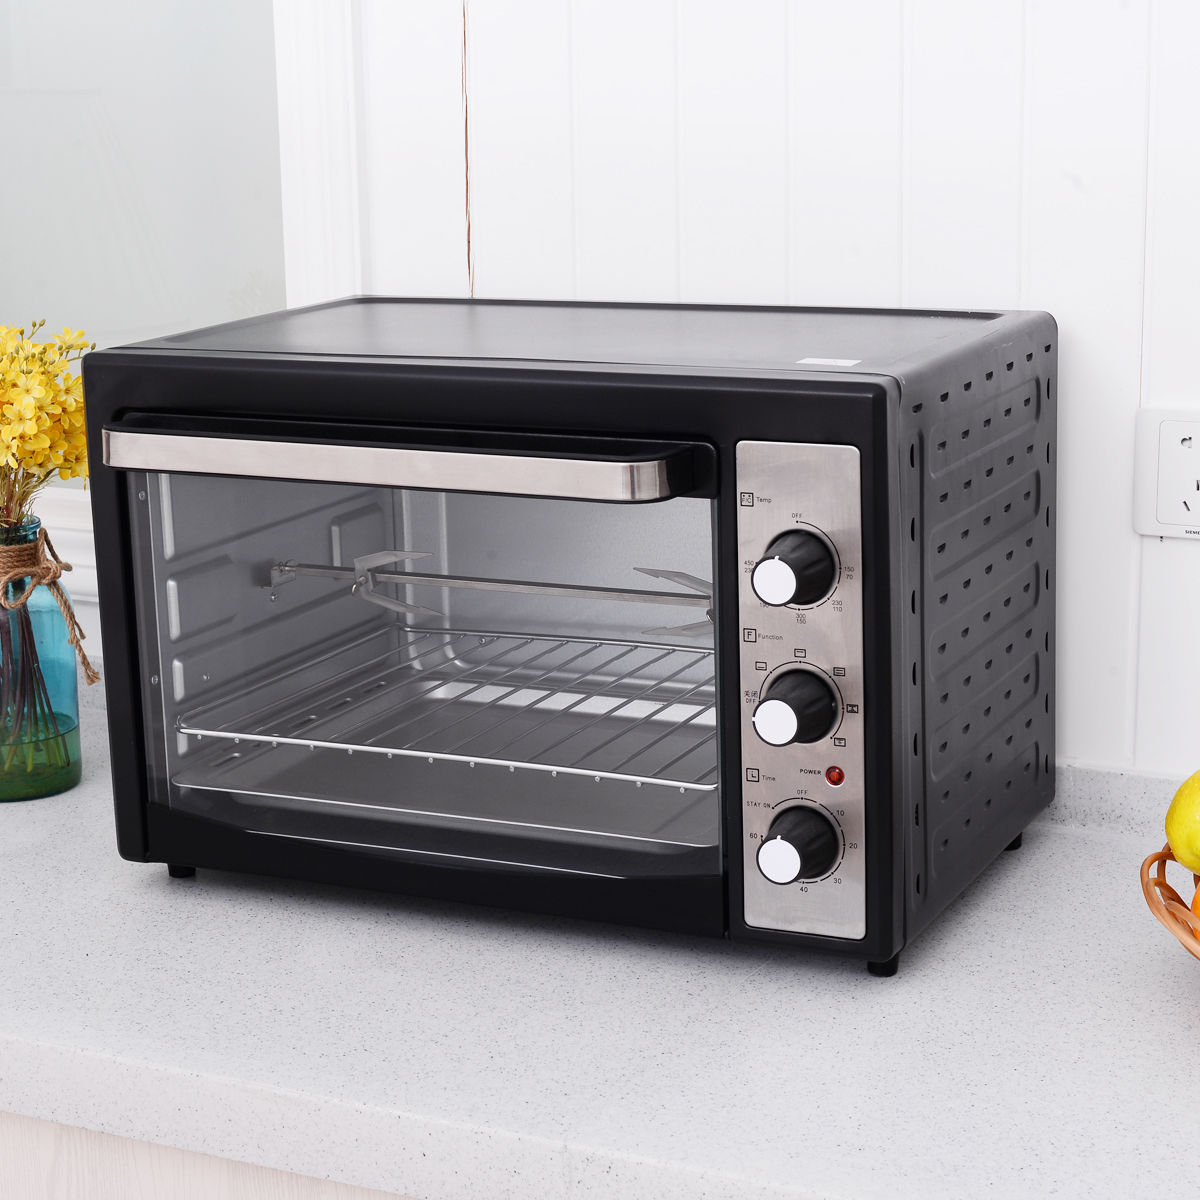 Costway 1800W Electric Toaster Oven Convection Broiler 40L Countertop with Drip Pan